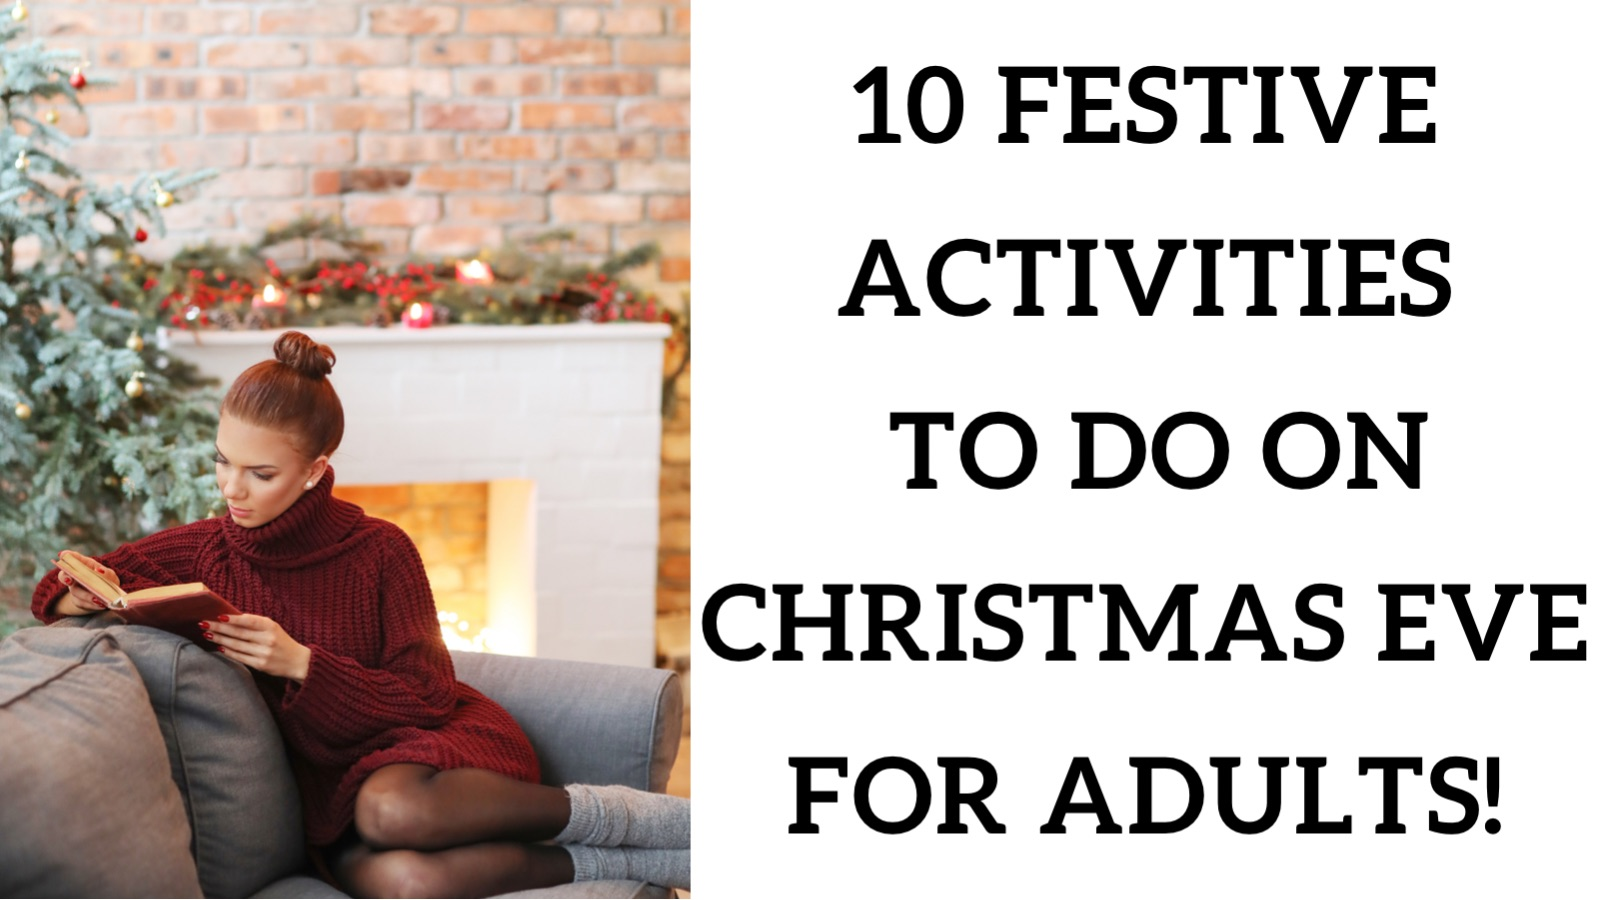 10 festive activities to do on Christmas eve for adults!